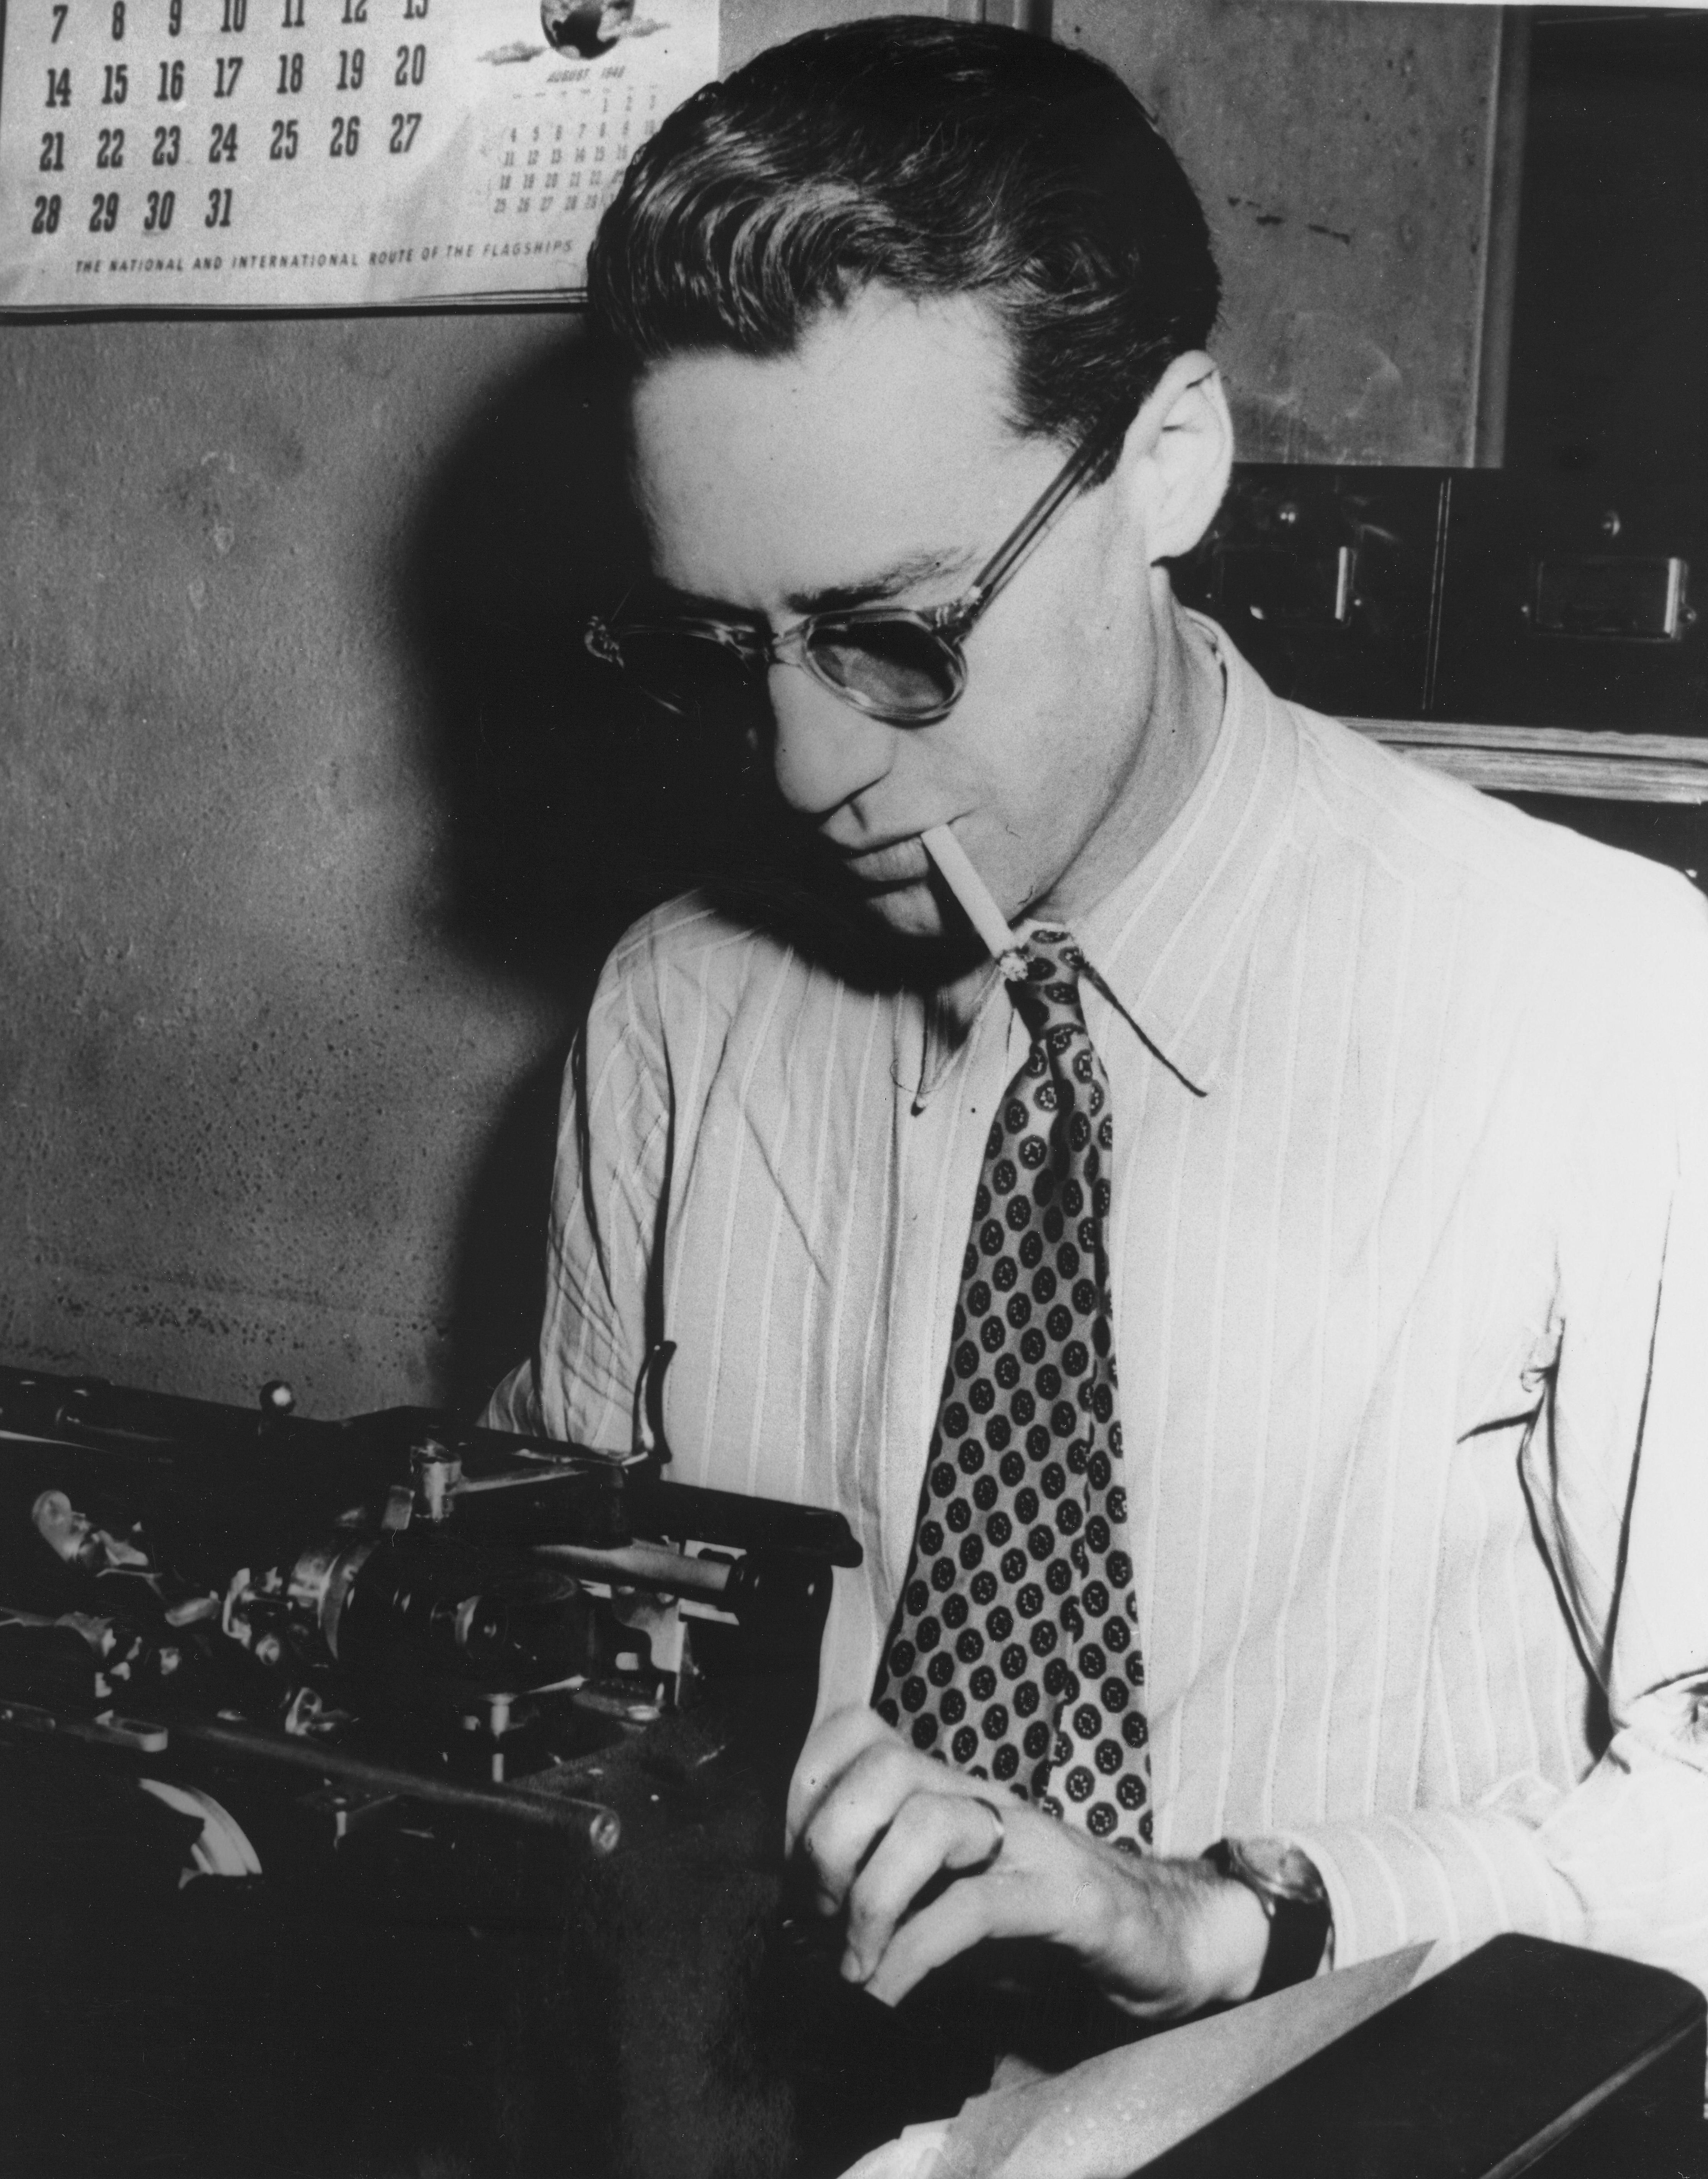 Journalist And Author John Bartlow Martin At Work At The